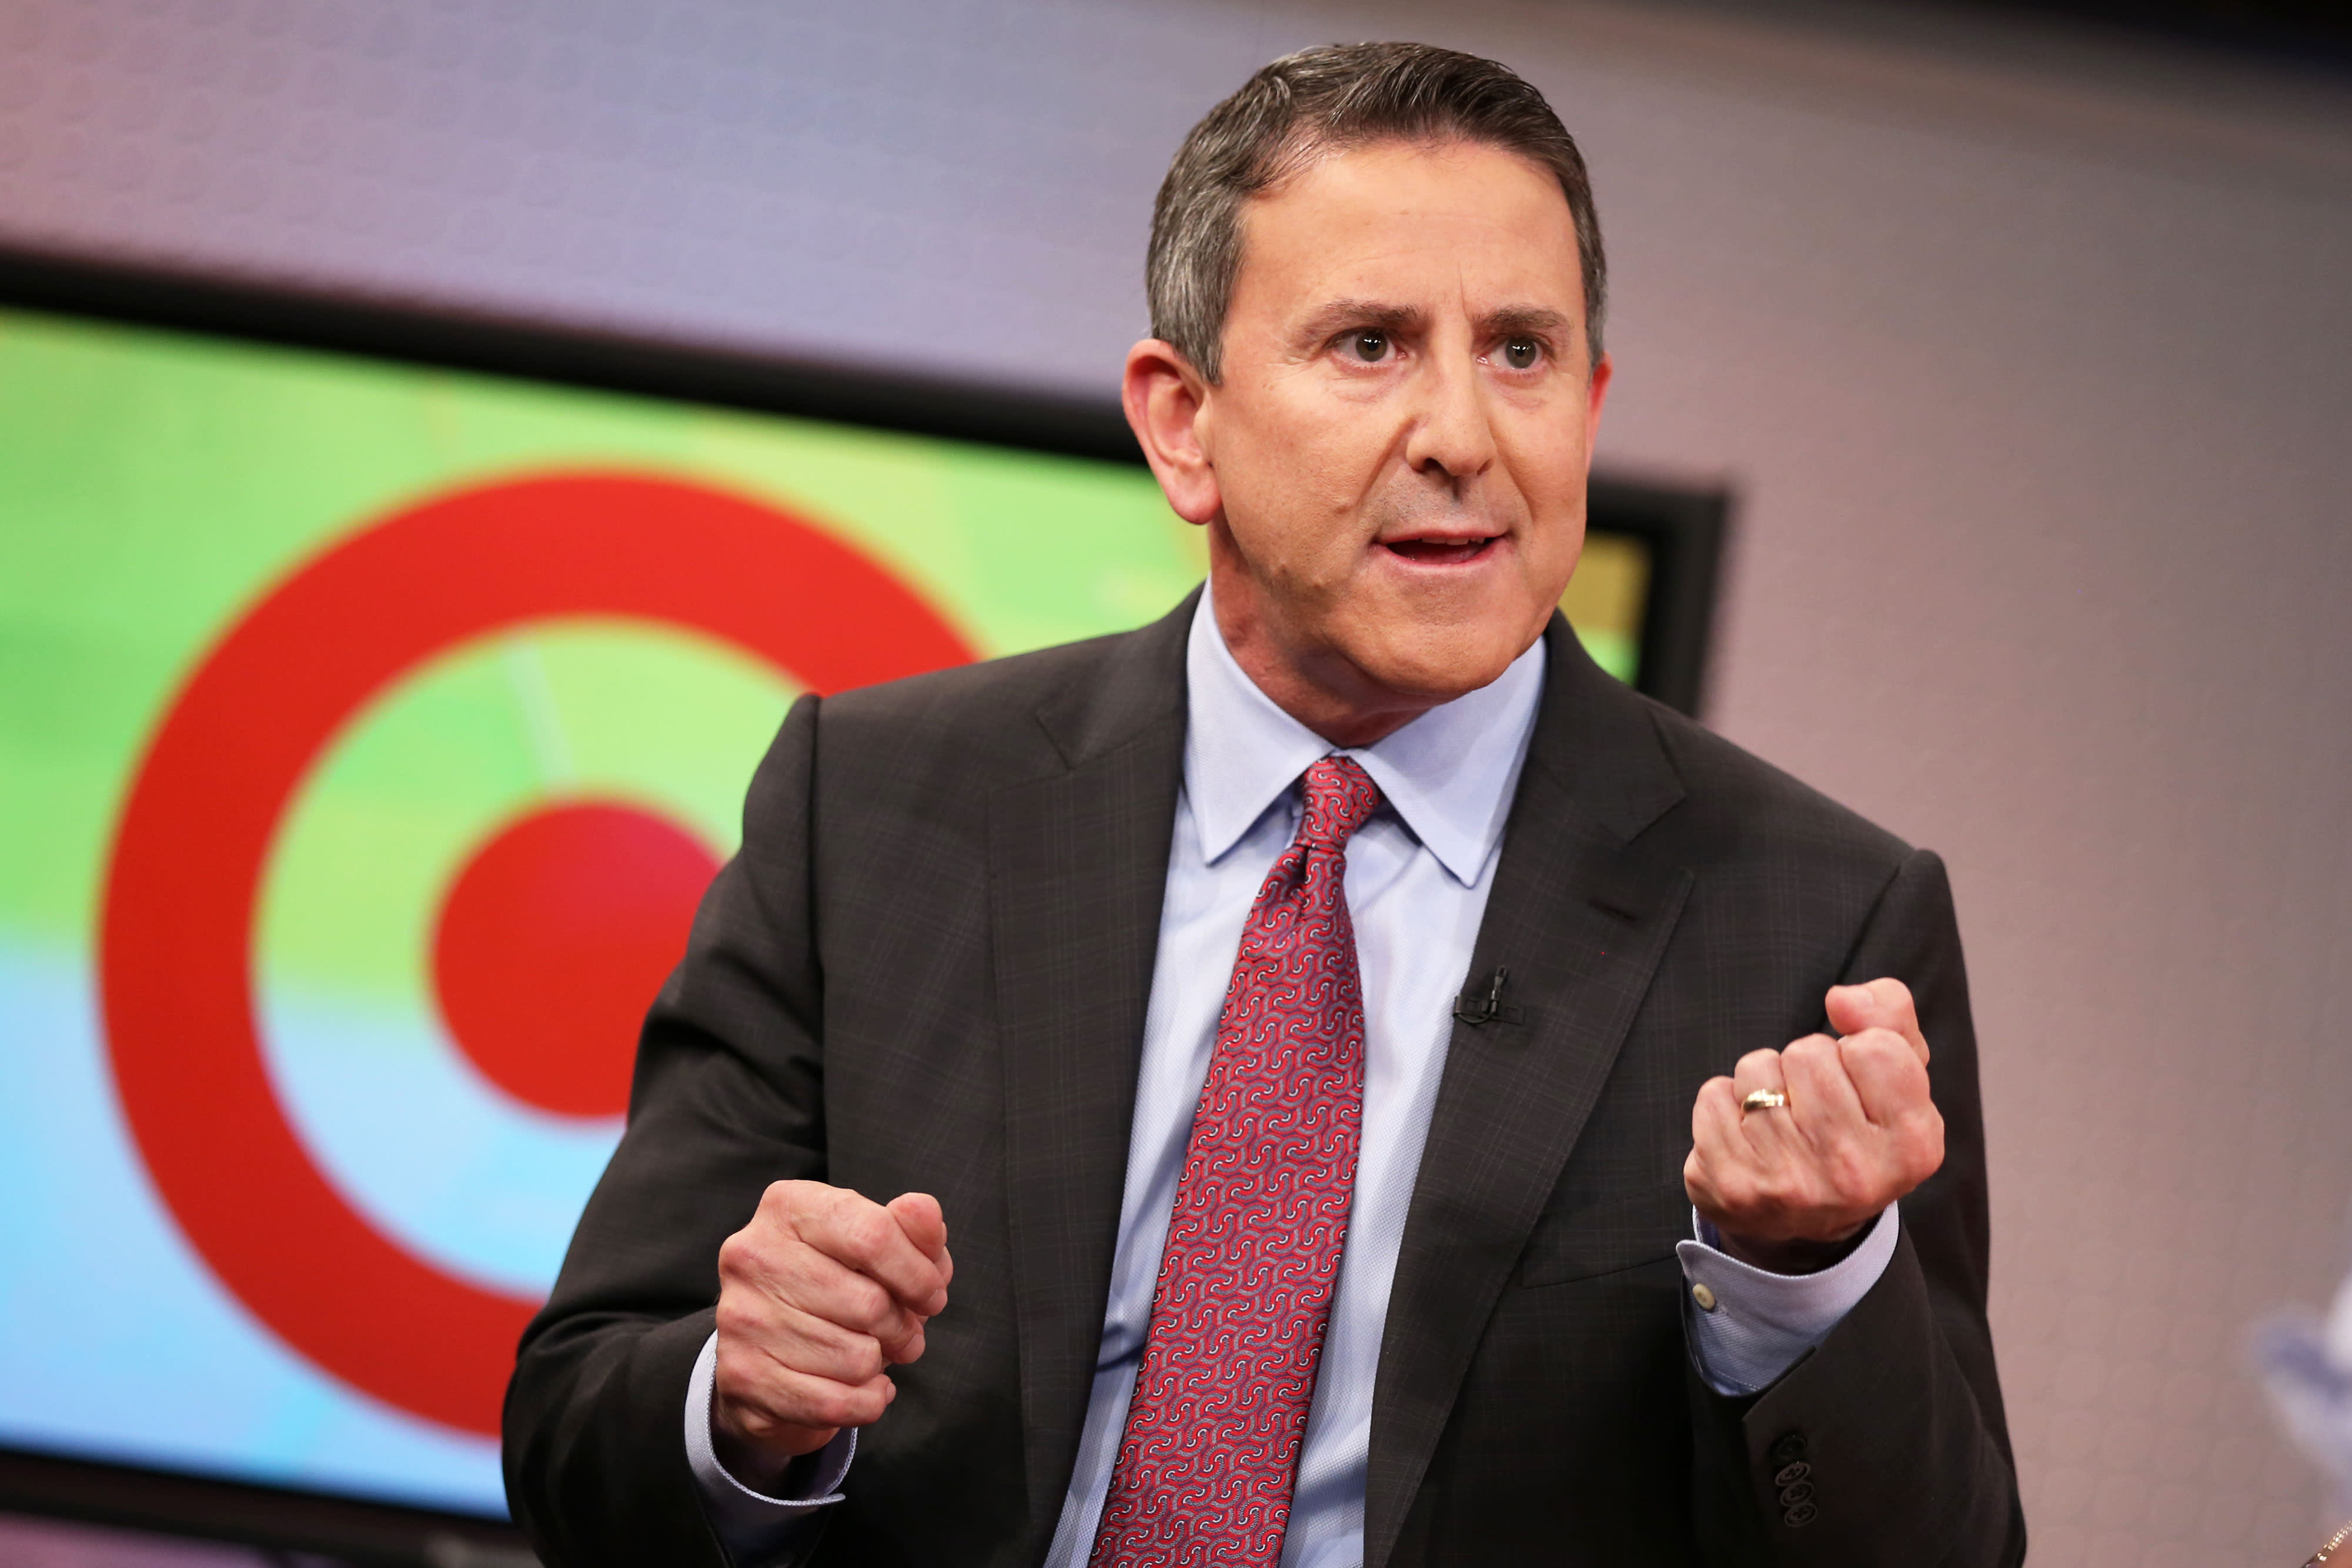 Target CEO says cost of handling online orders drops 90% when shoppers use same-day options